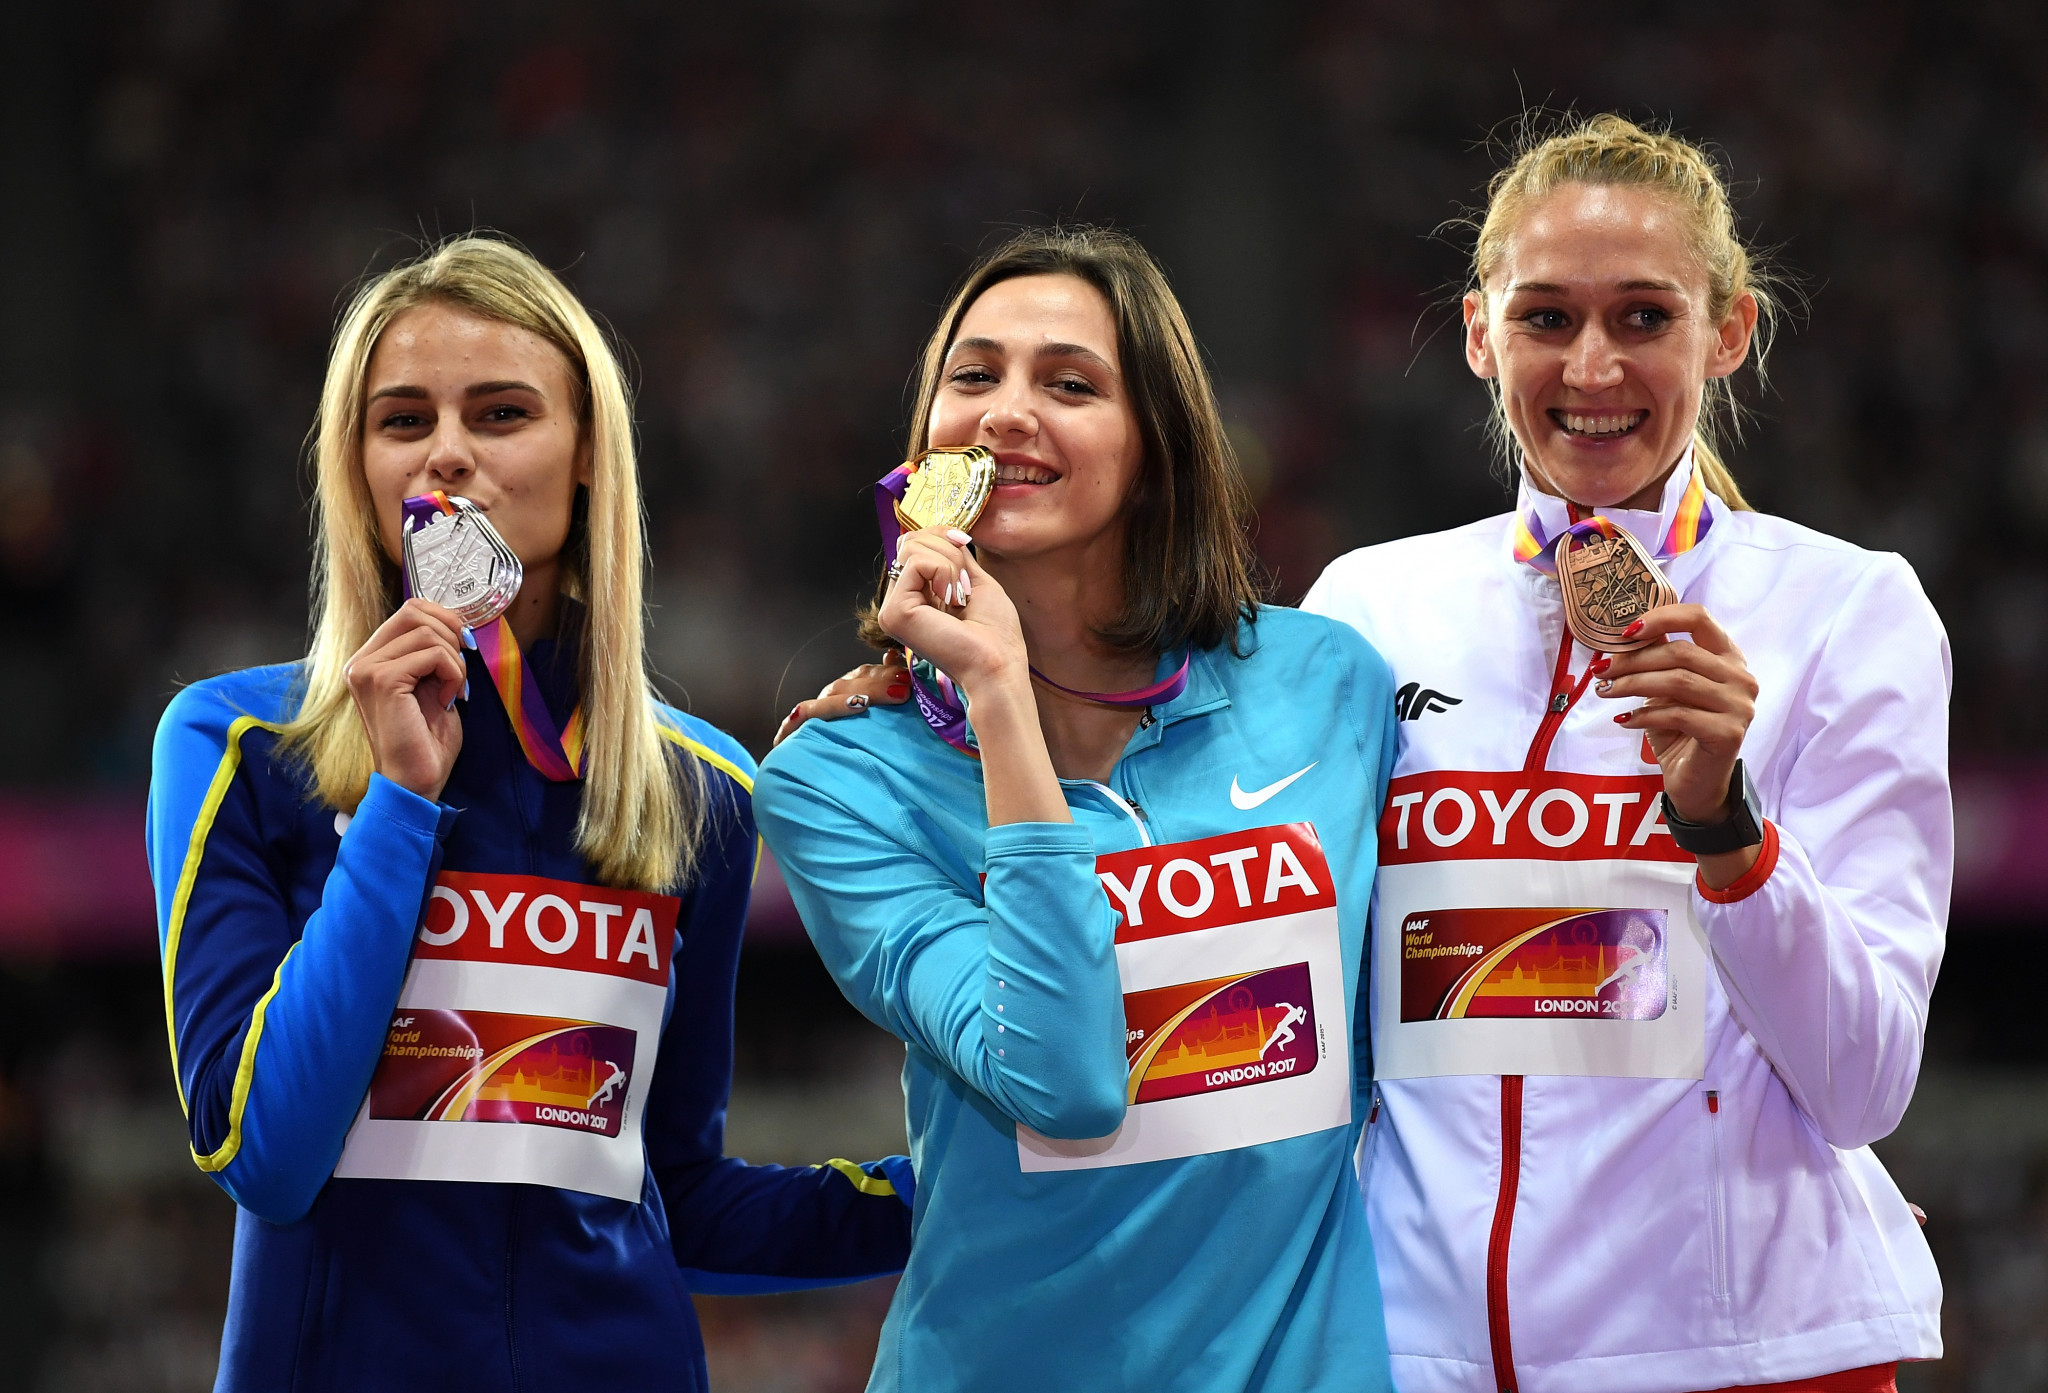 High jumper Maria Lasitskene, centre, was among the Russian athletes forced to compete as a neutral at the 2017 IAAF World Championships in London ©Getty Images